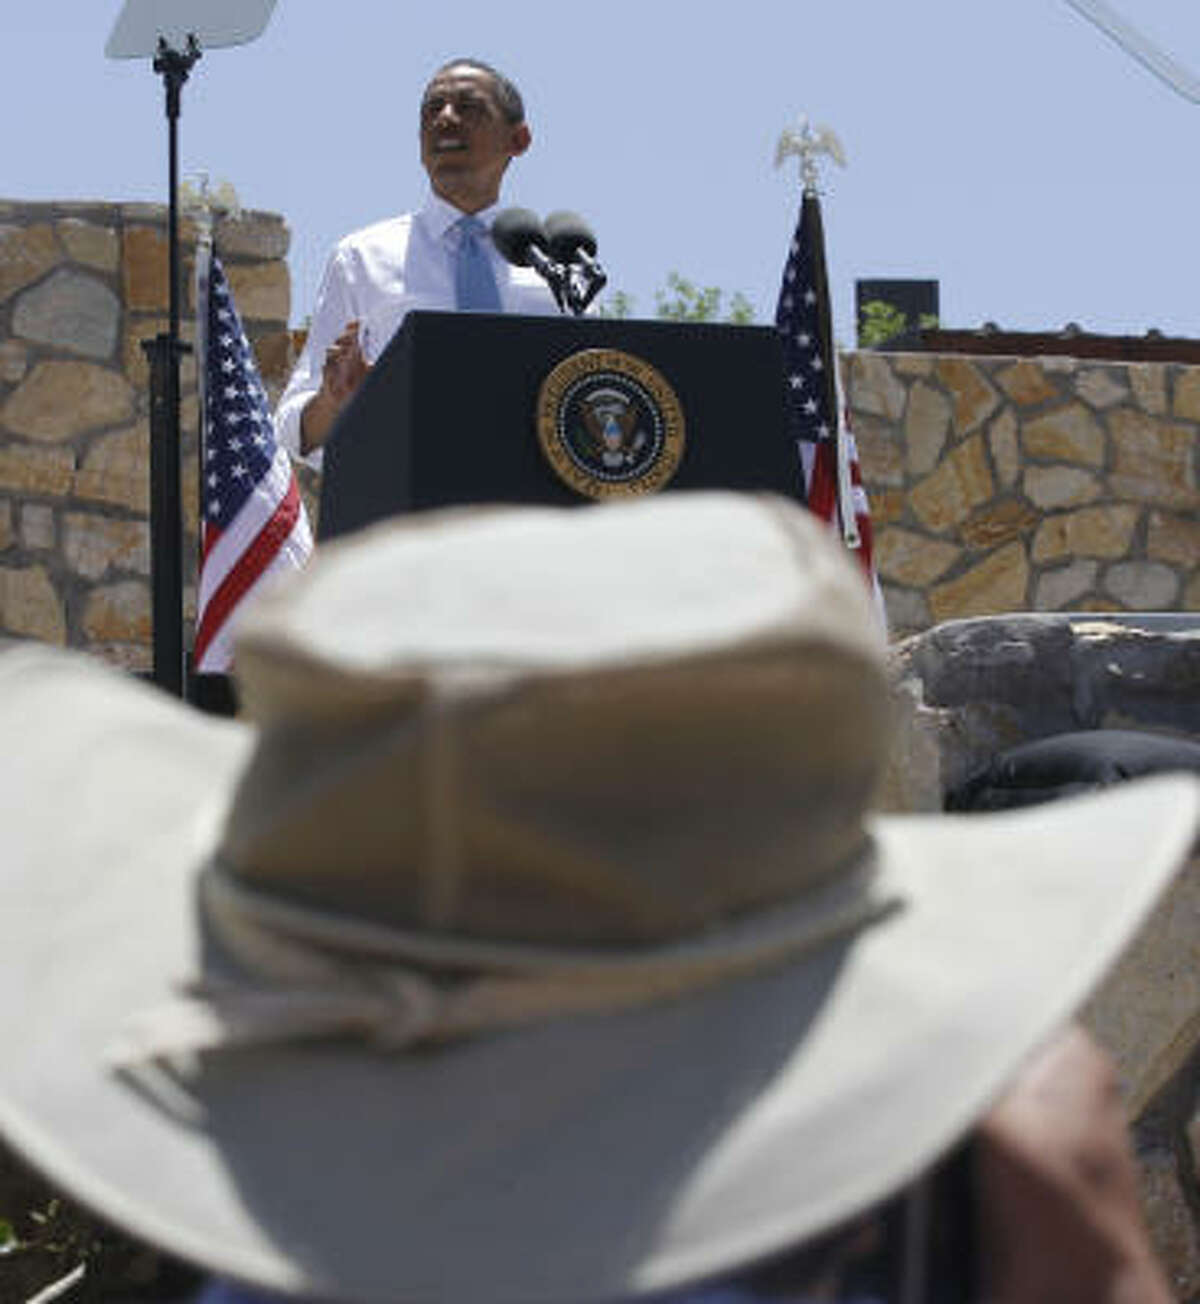 President Obama speaks about immigration reform at Chamizal National Memorial Park in El Paso.